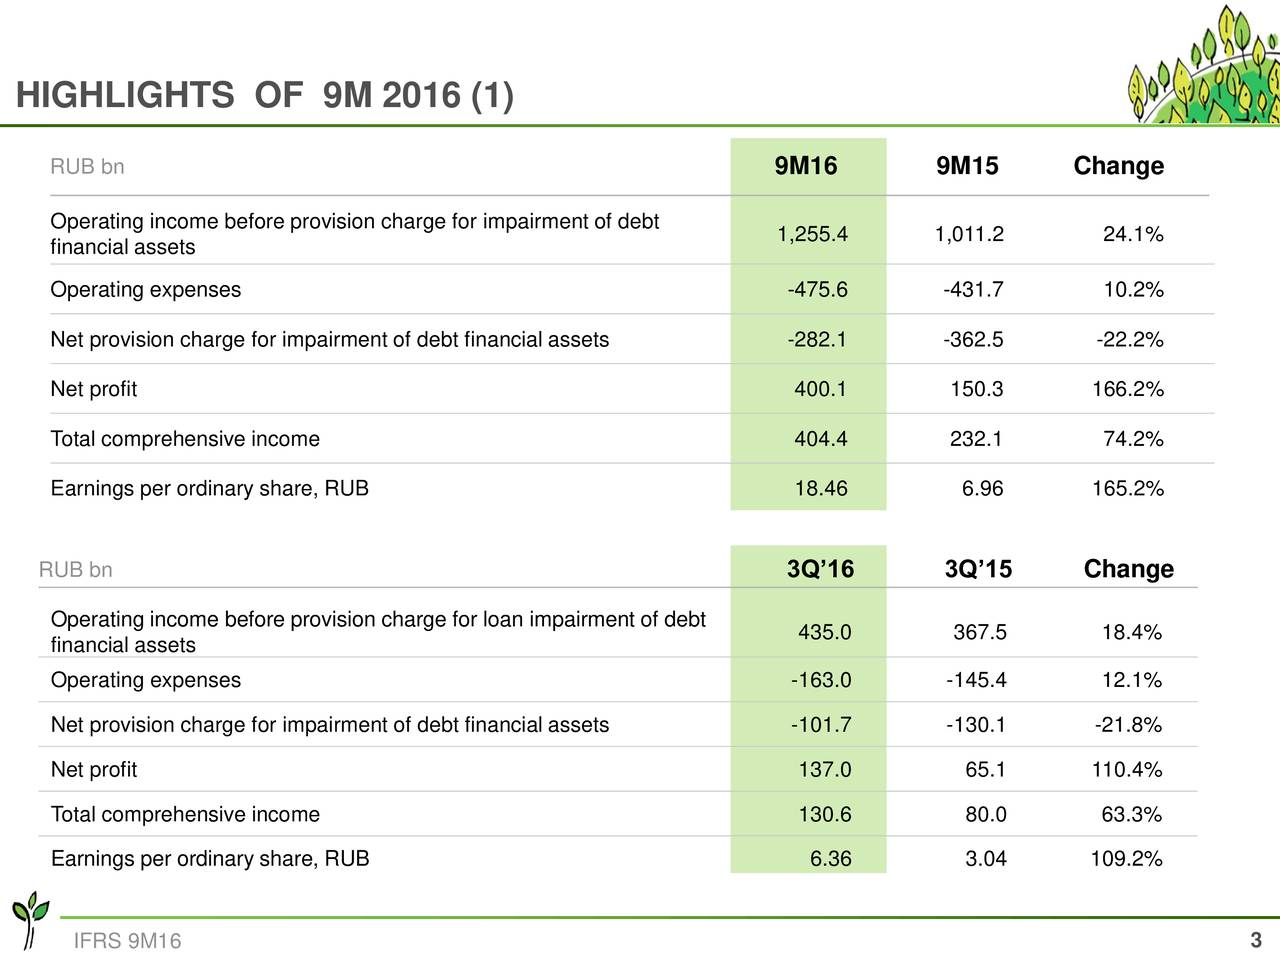 RUB bn 9M16 9M15 Change Operating income before provision charge for impairment of debt financial assets 1,255.4 1,011.2 24.1% Operating expenses -475.6 -431.7 10.2% Net provision charge for impairment of debt financial assets -282.1 -362.5 -22.2% Net profit 400.1 150.3 166.2% Total comprehensive income 404.4 232.1 74.2% Earnings per ordinary share, RUB 18.46 6.96 165.2% RUB bn 3Q16 3Q15 Change Operating income before provision charge for loan impairment of debt financial assets 435.0 367.5 18.4% Operating expenses -163.0 -145.4 12.1% Net provision charge for impairment of debt financial assets -101.7 -130.1 -21.8% Net profit 137.0 65.1 110.4% Total comprehensive income 130.6 80.0 63.3% Earnings per ordinary share, RUB 6.36 3.04 109.2% IFRS 9M16 3